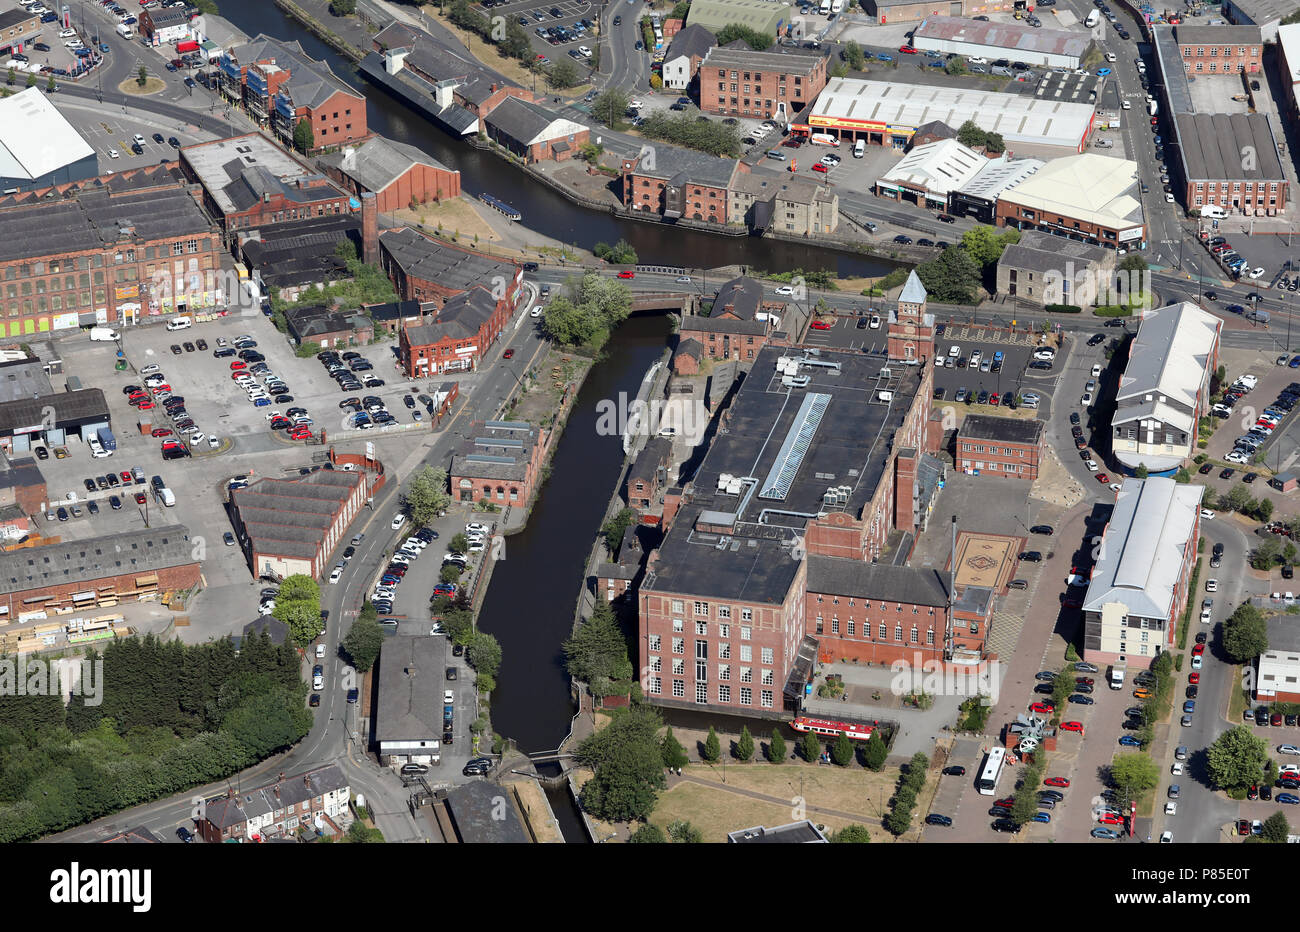 aerial view of Wigan Pier - Stock Image